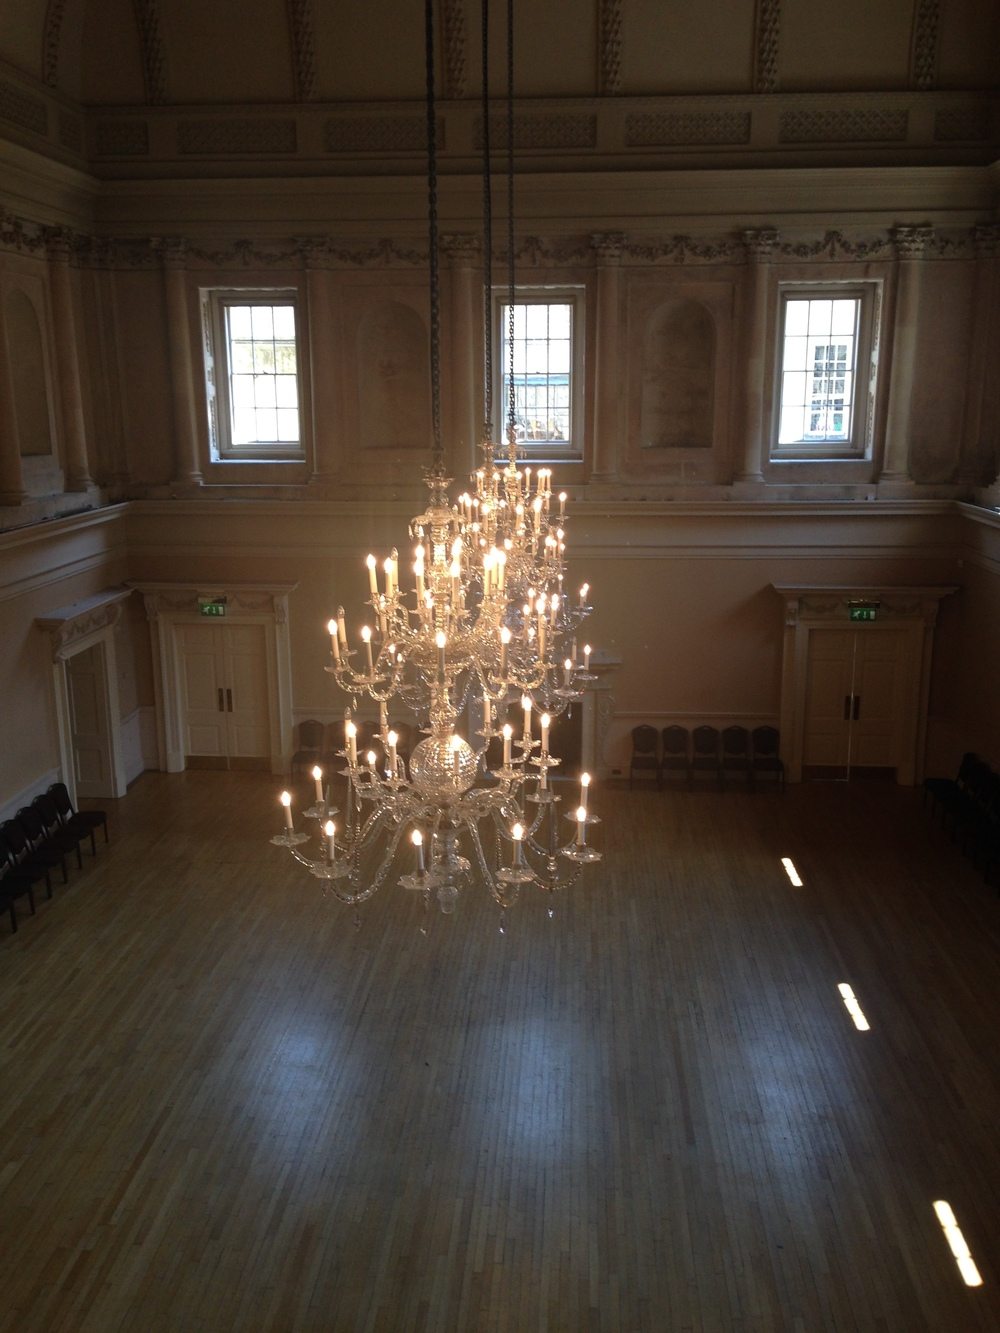 And a shot with the floor, to provide a better sense of how huge the Assembly Rooms were.